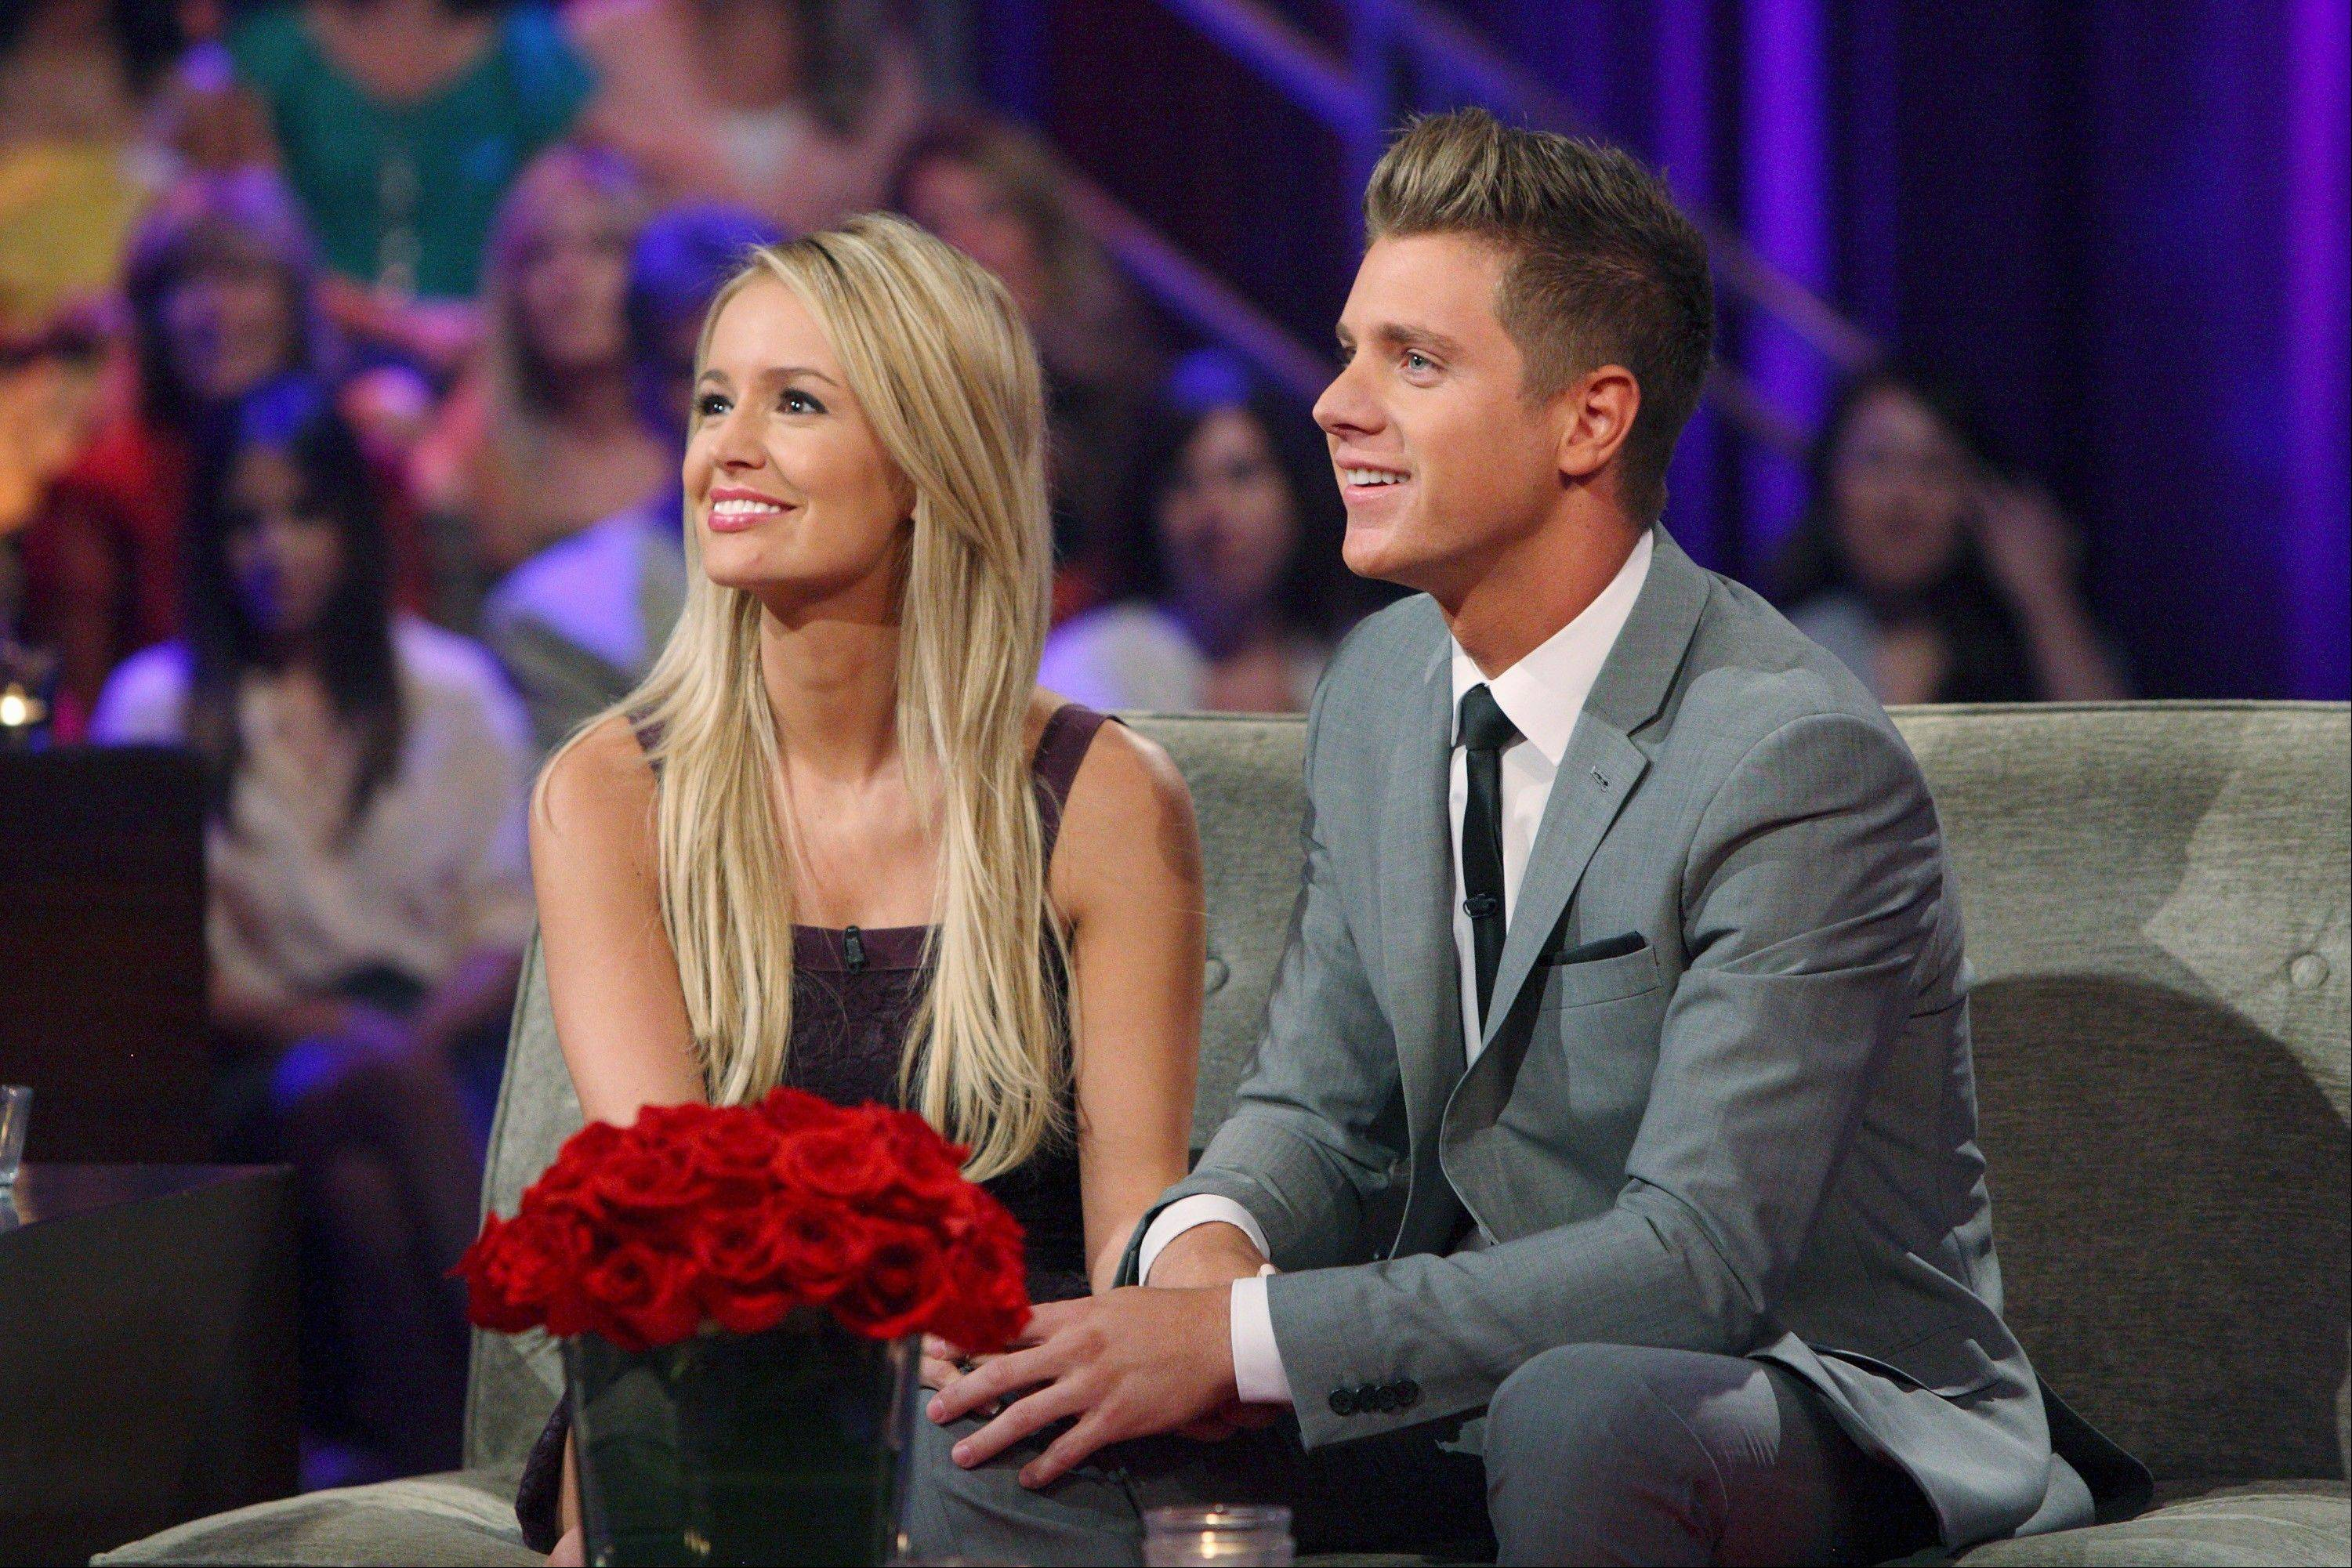 Emily Maynard and Jef Holm have confirmed they have ended their relationship as reported by People magazine on Tuesday.